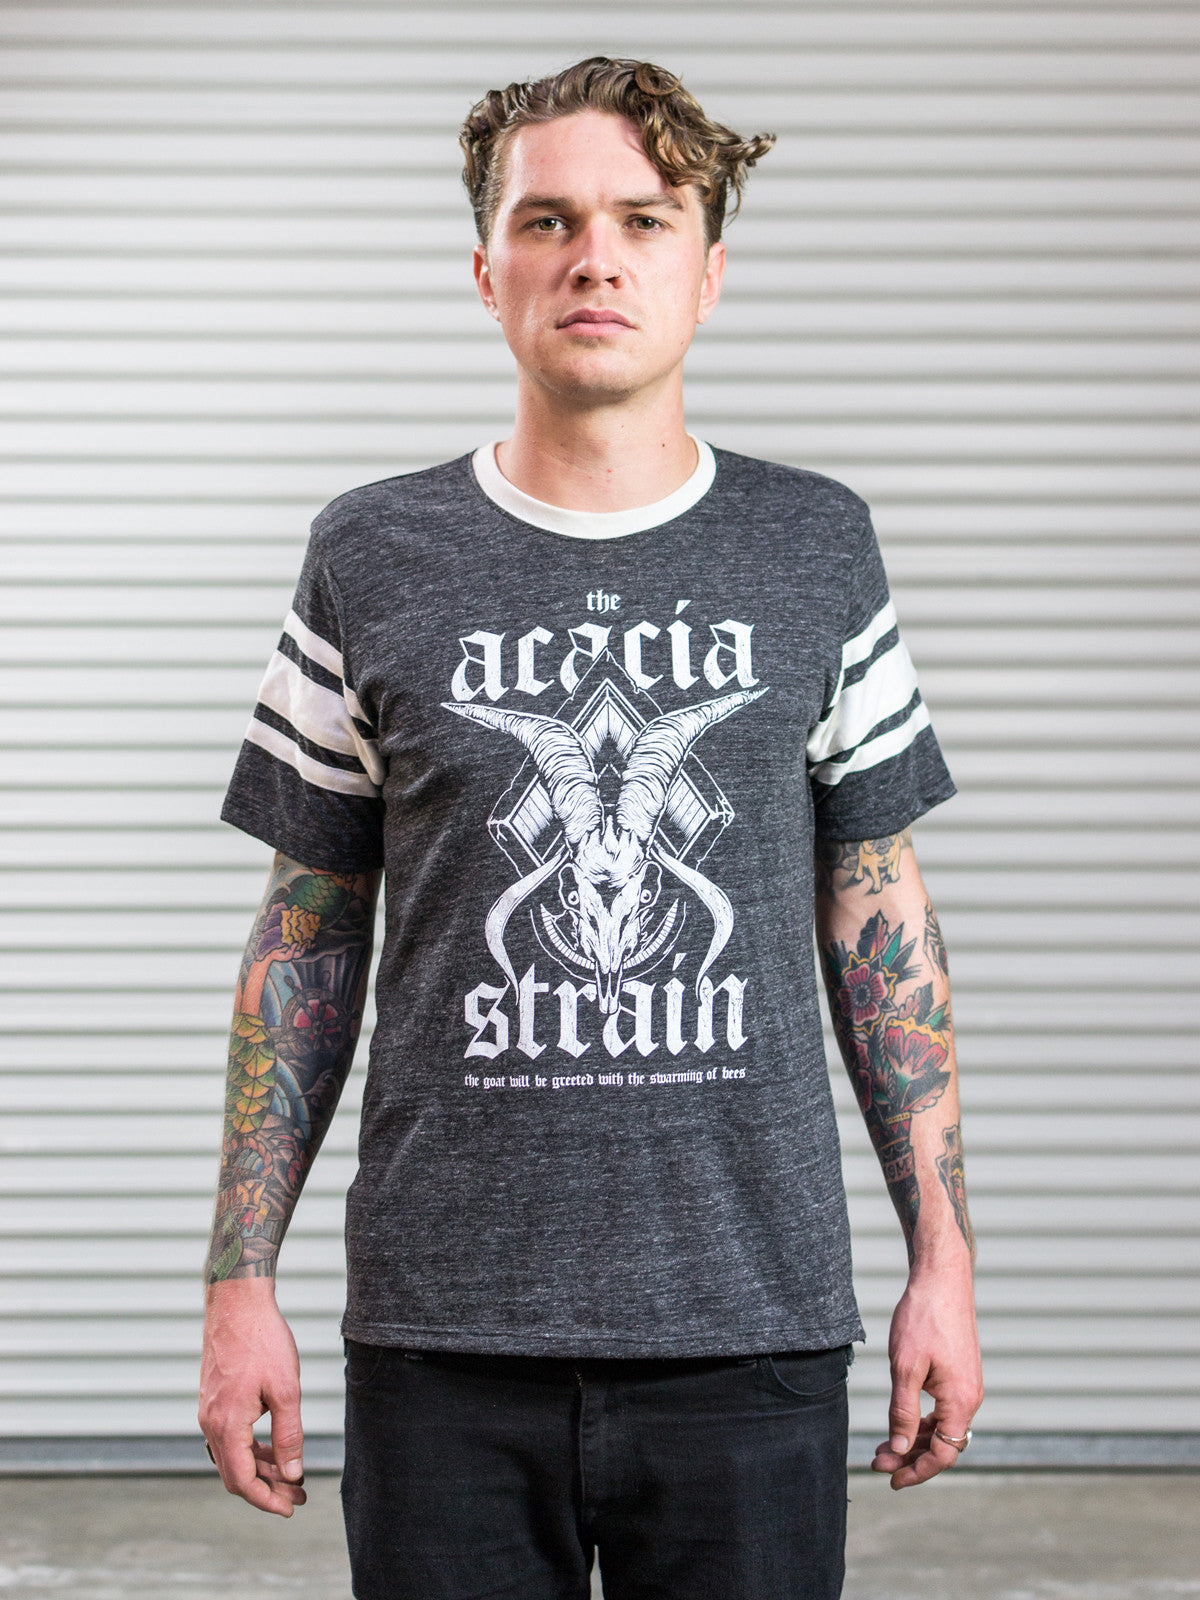 The Acacia Strain - Goat Shirt - Merch Limited